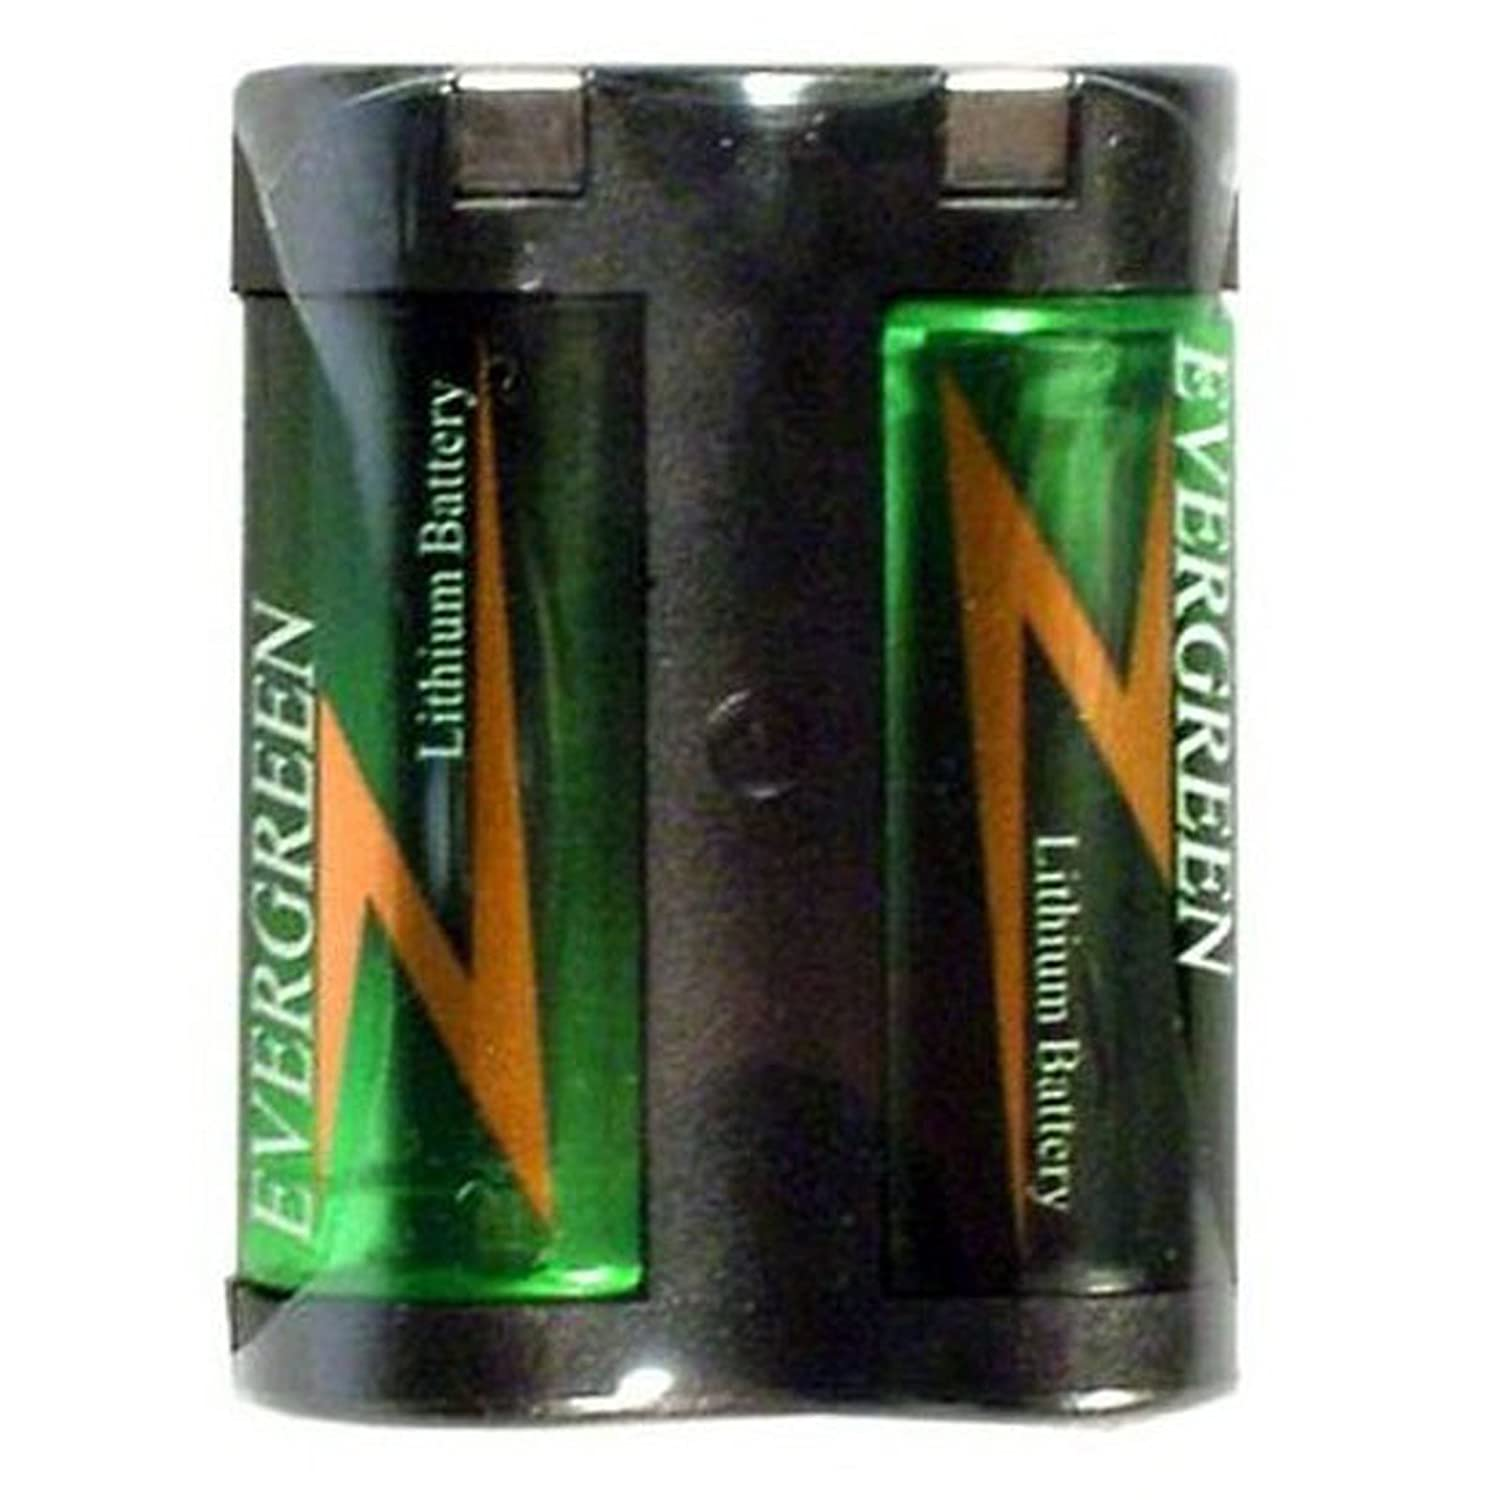 Evergreen 2CR5 Photo Lithium Battery Replacement